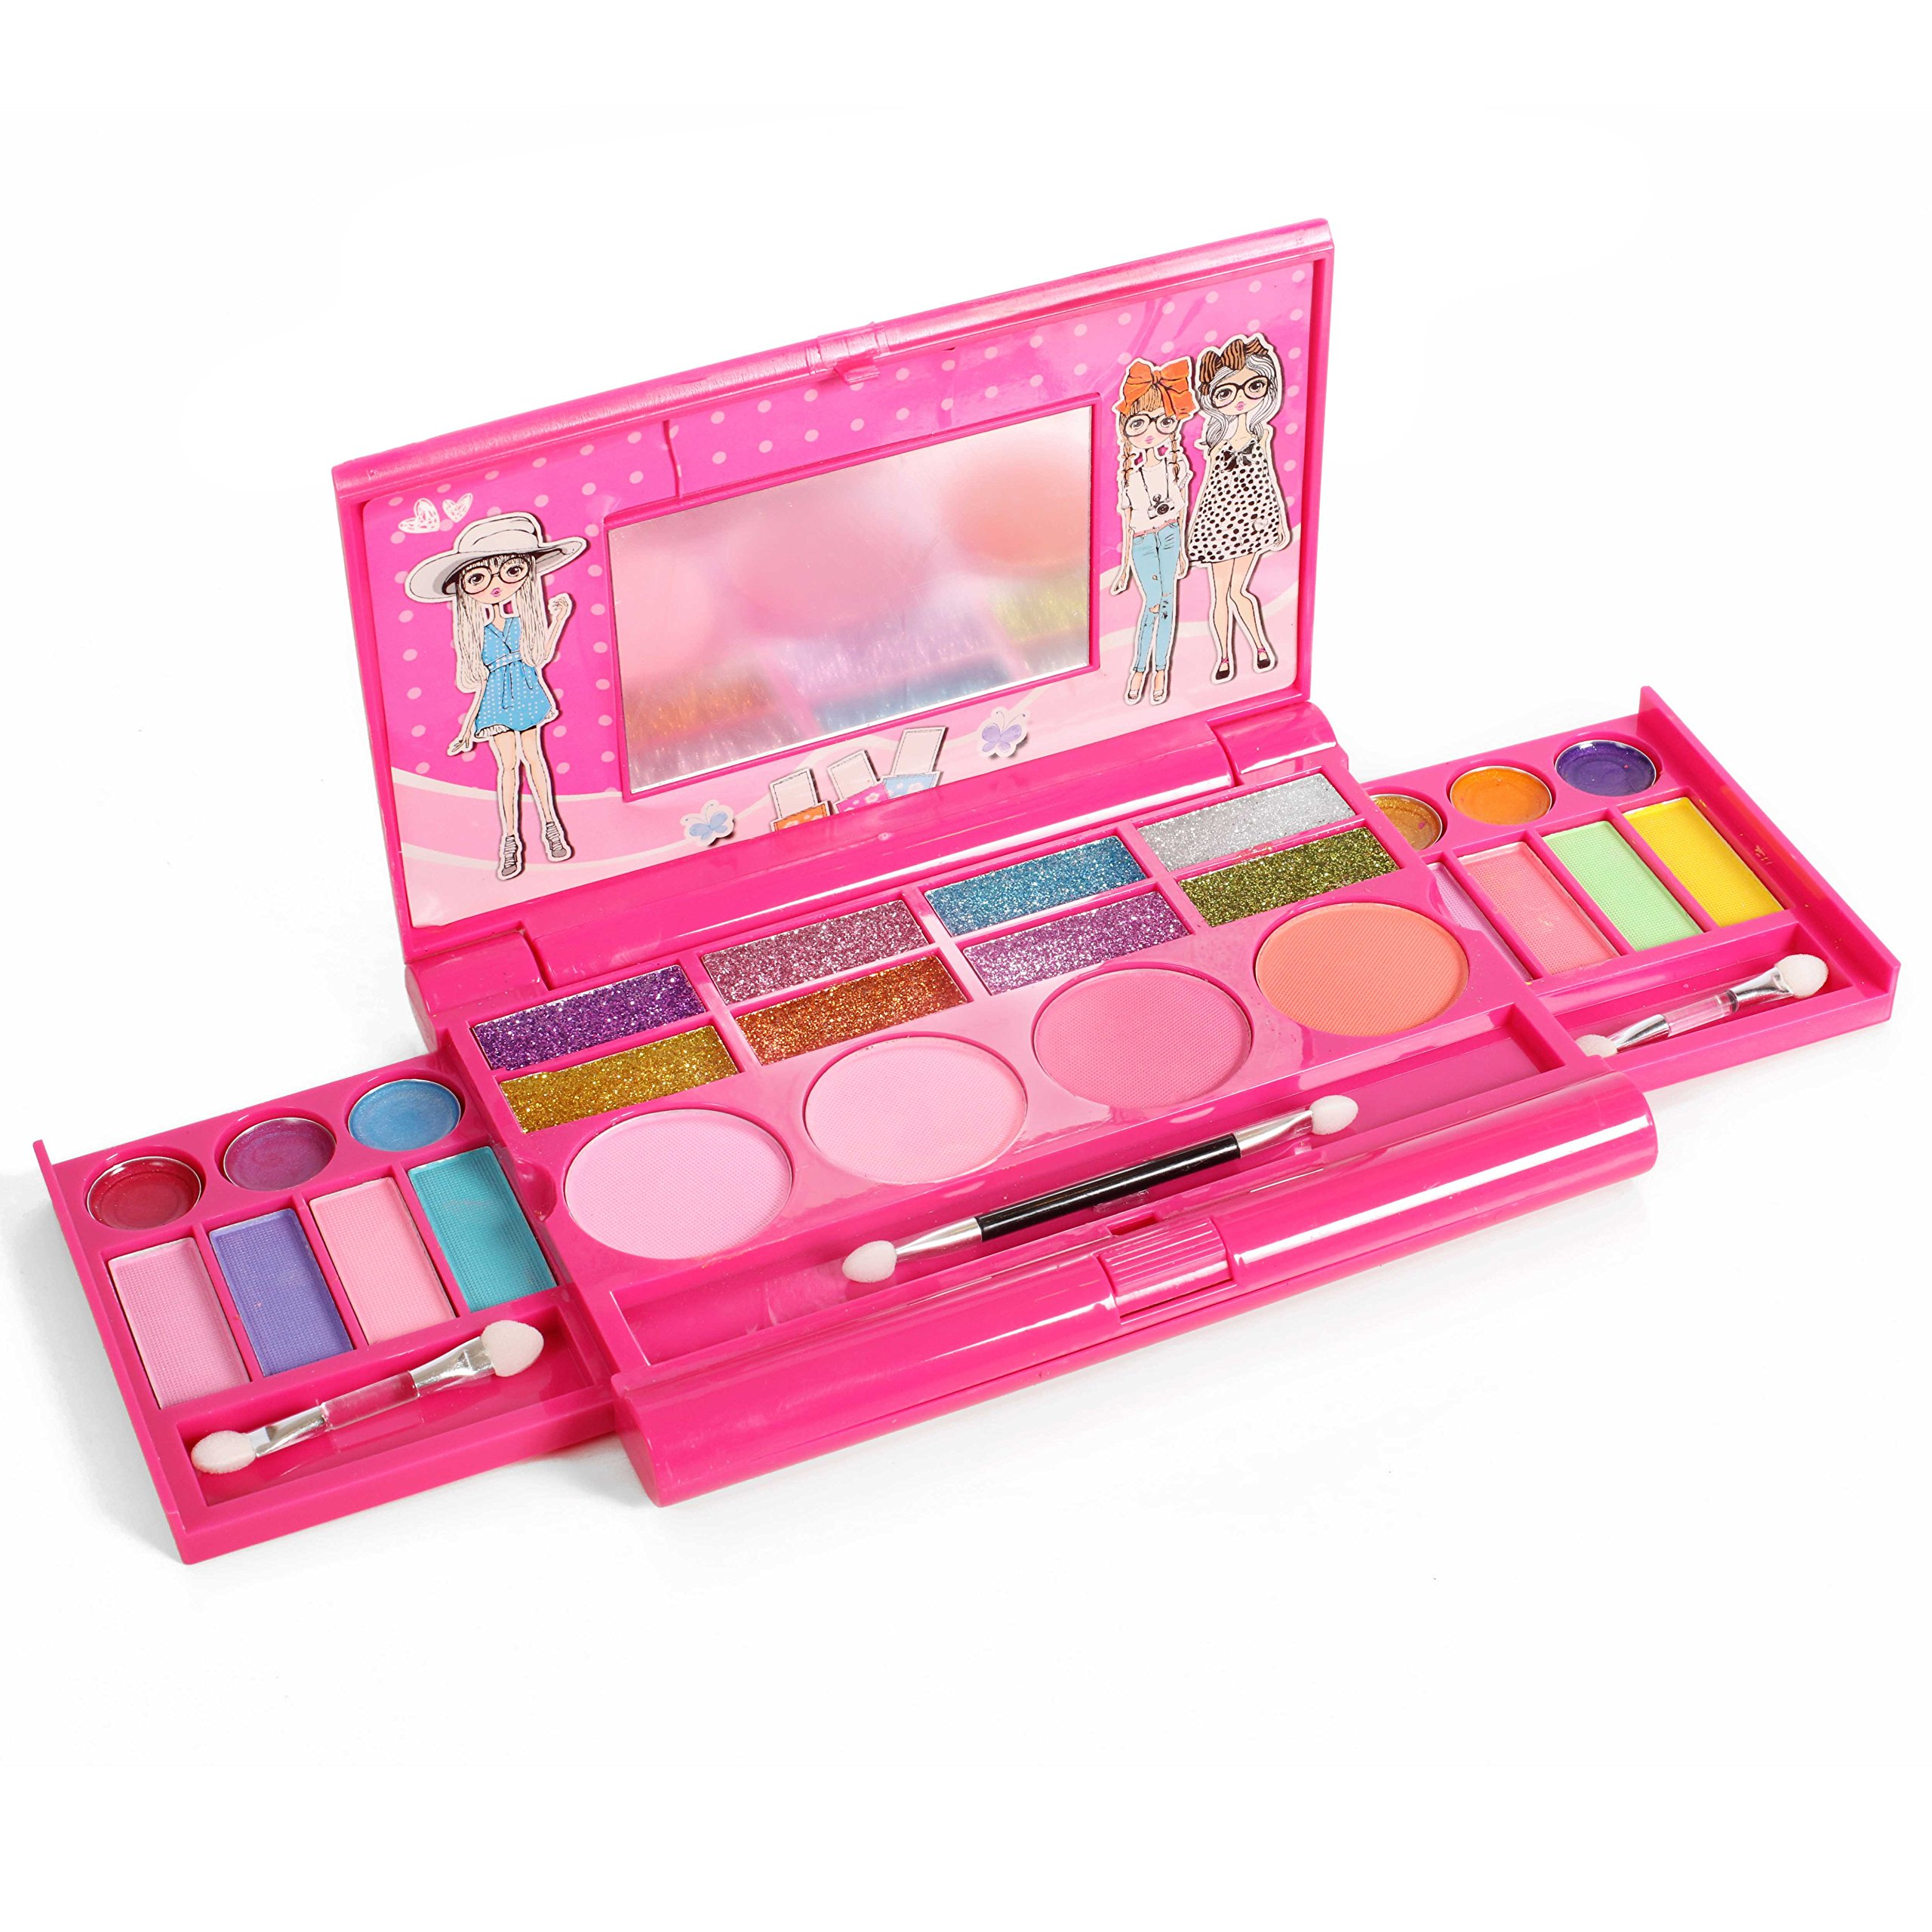 IQ Toys Princess Girl's All-in-One Deluxe Makeup Palette with Mirror by IQ Toys